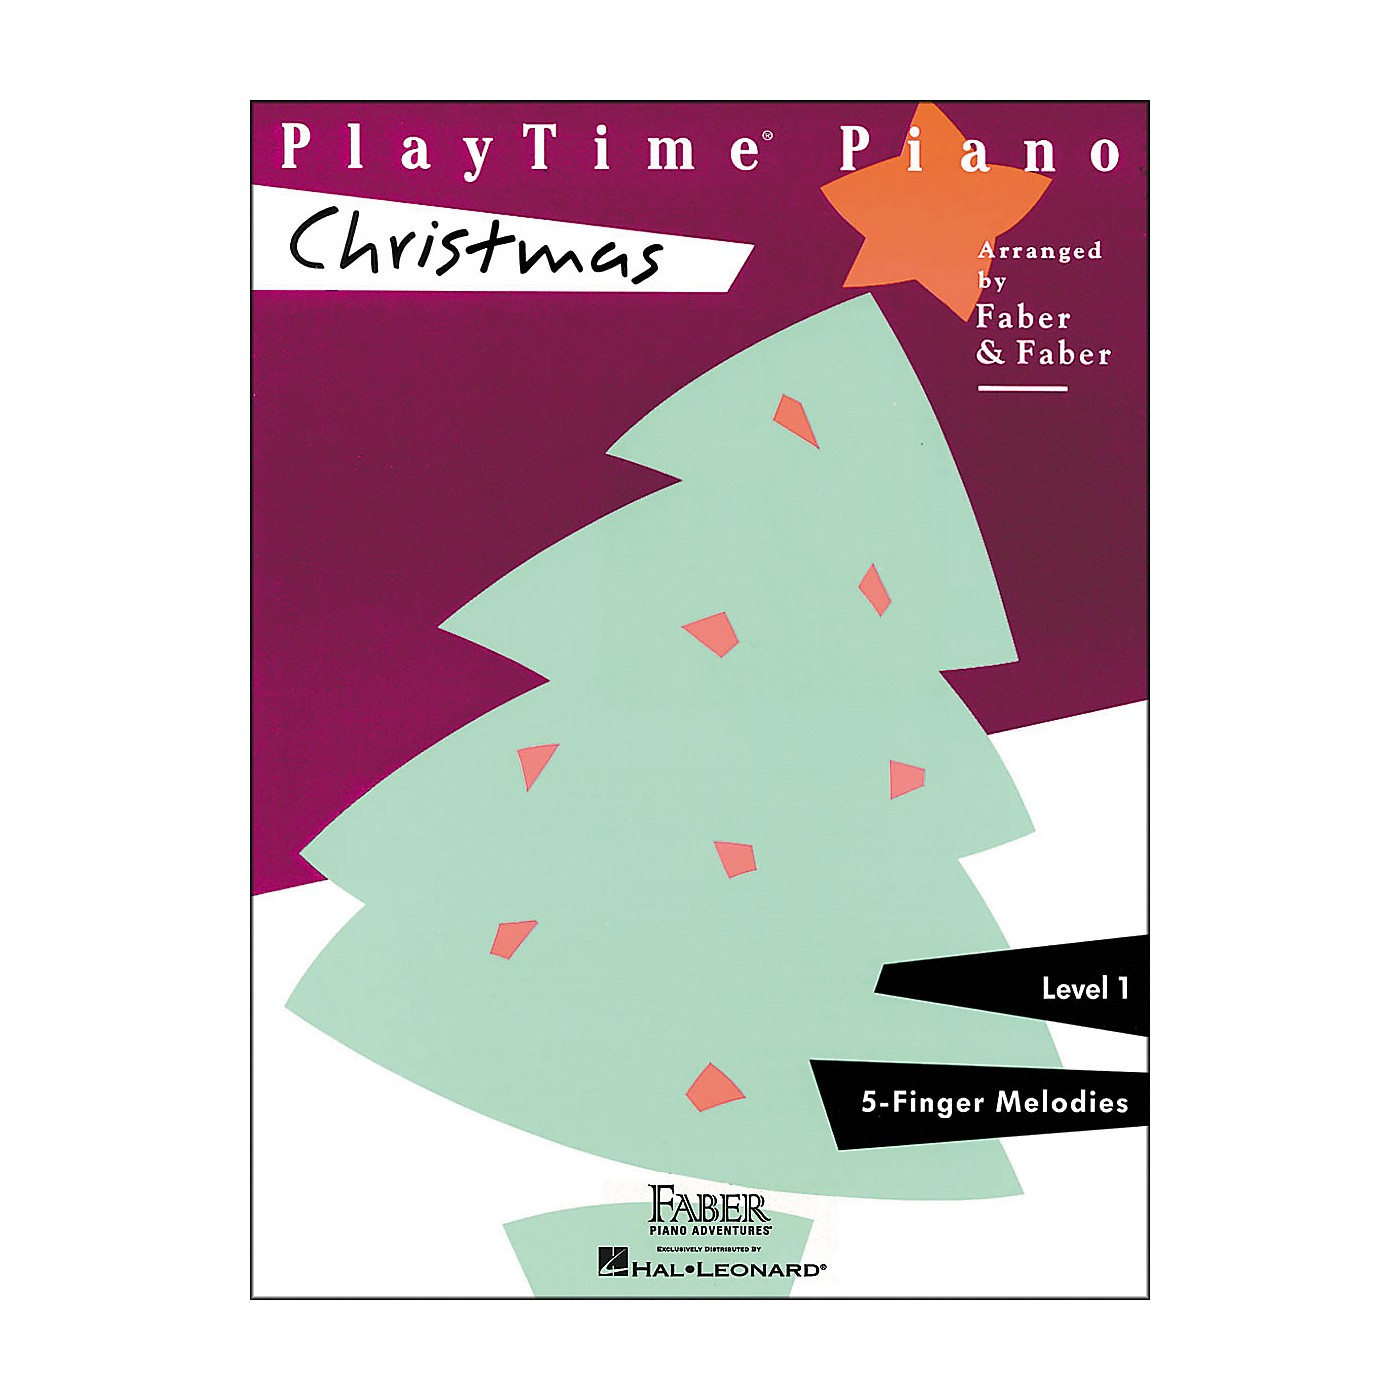 Faber Piano Adventures Playtime Piano Christmas Level 1 F-Finger Melodies - Faber Piano thumbnail